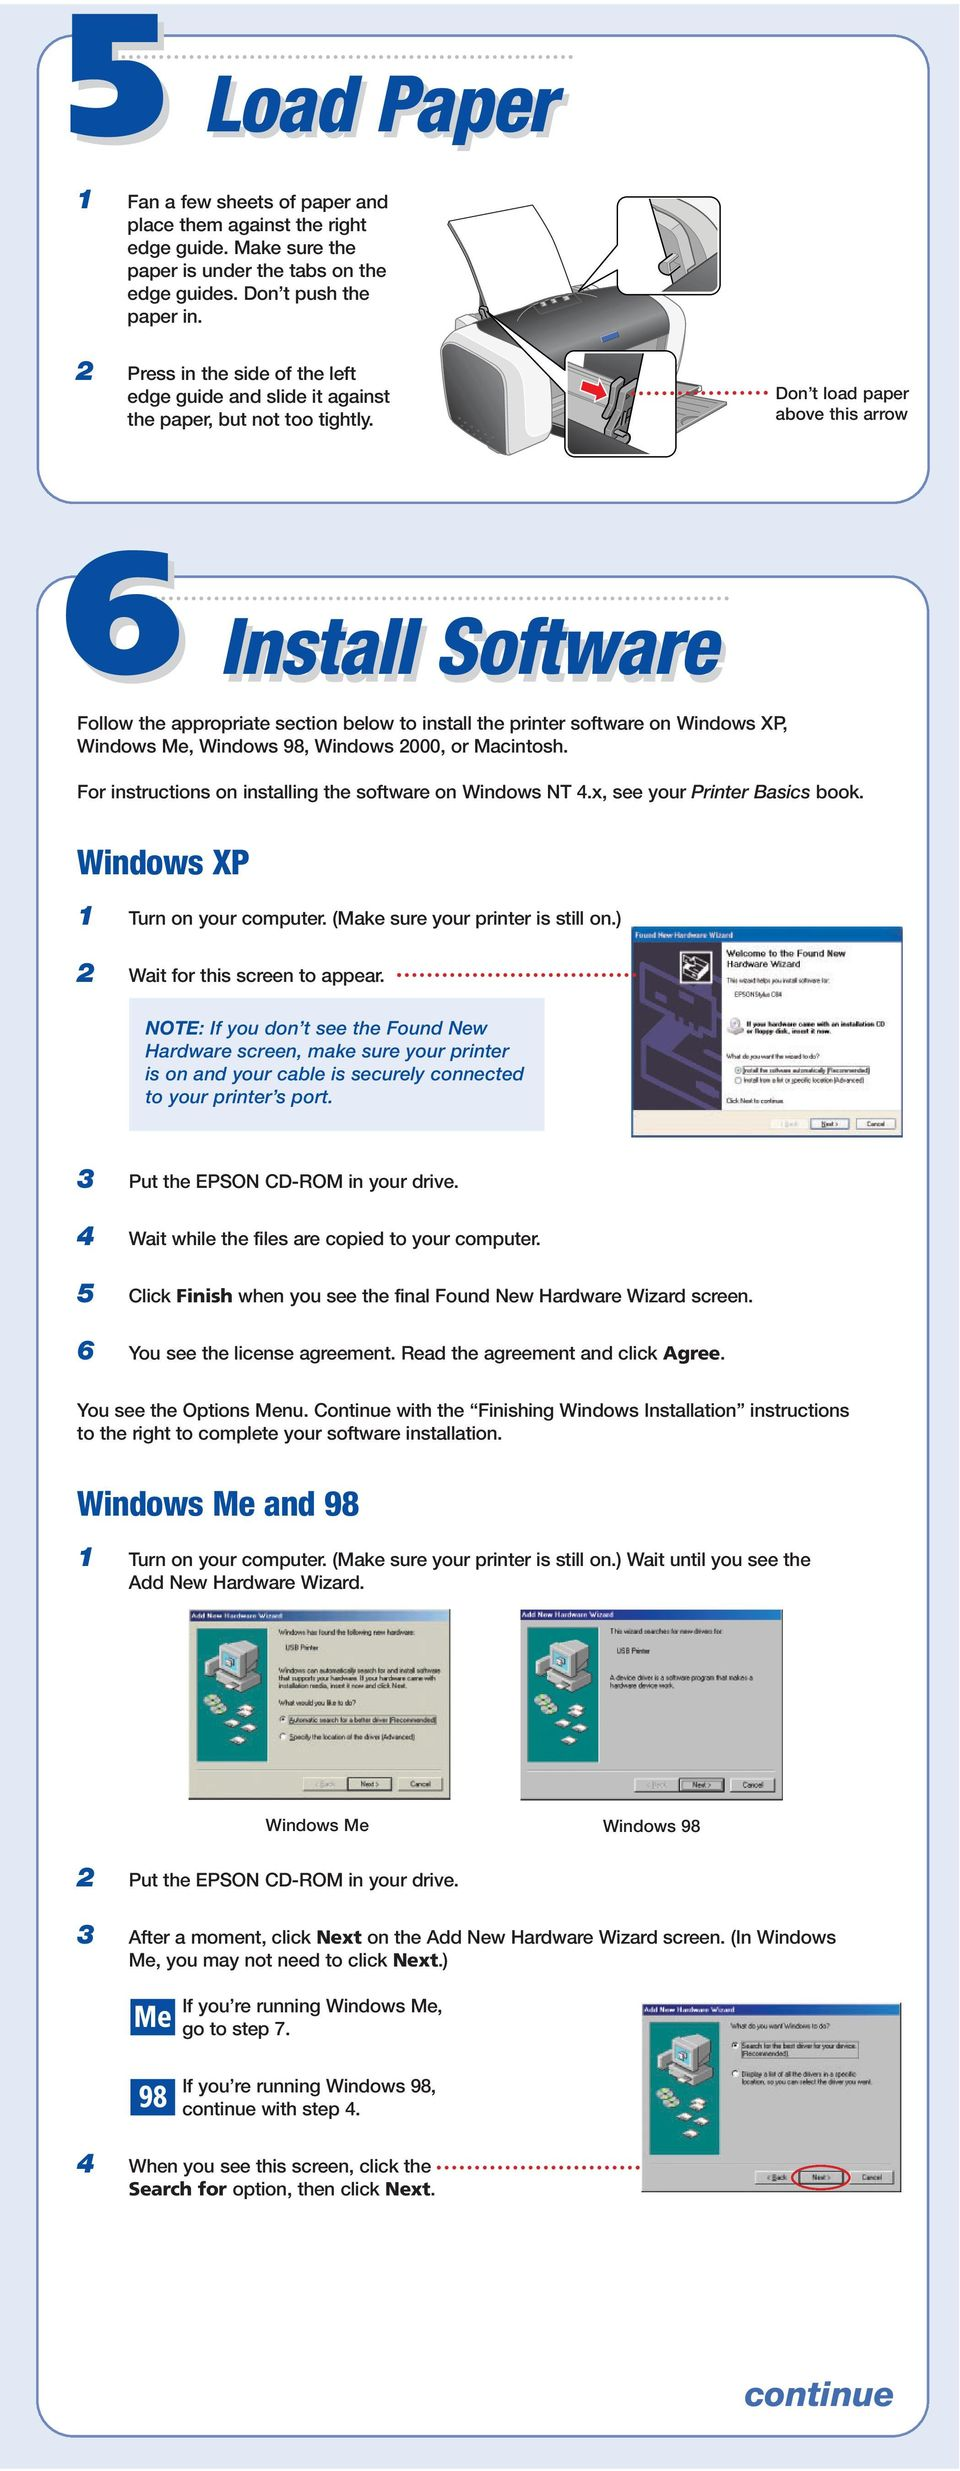 Don t load paper above this arrow 6 Install Software Follow the appropriate section below to install the printer software on Windows XP, Windows Me, Windows 98, Windows 2000, or Macintosh.